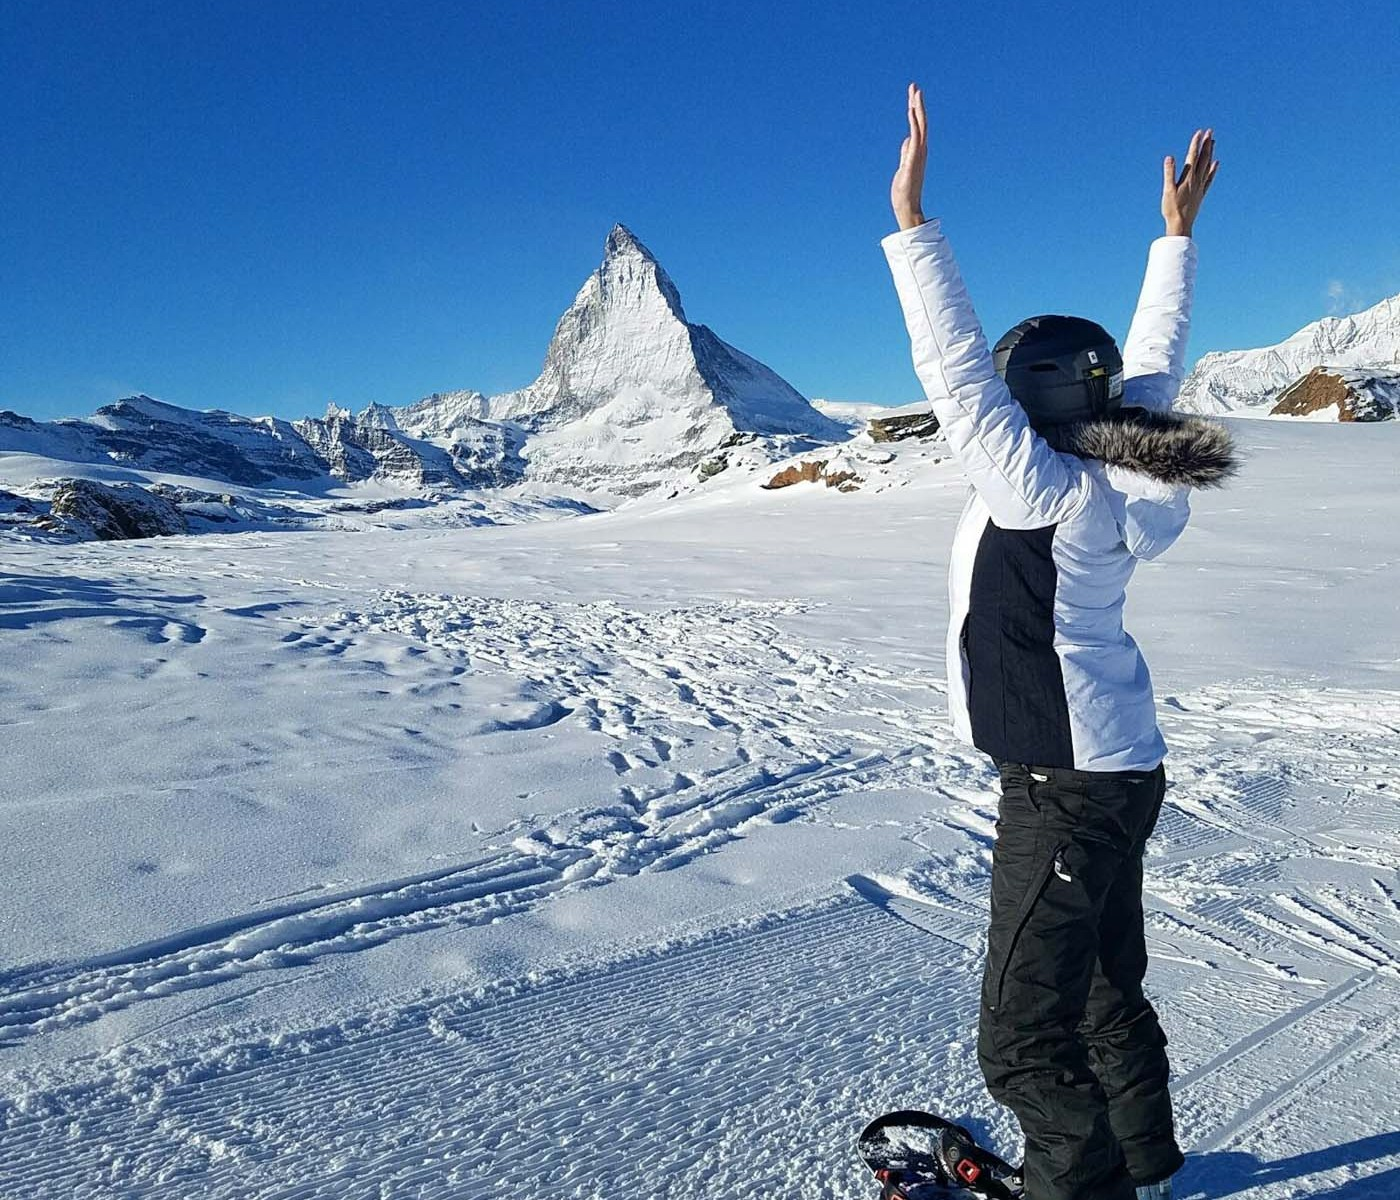 Glamping Blog News 8 Winter Activities Snowboarding Main by Lacy - Kristen Kellogg